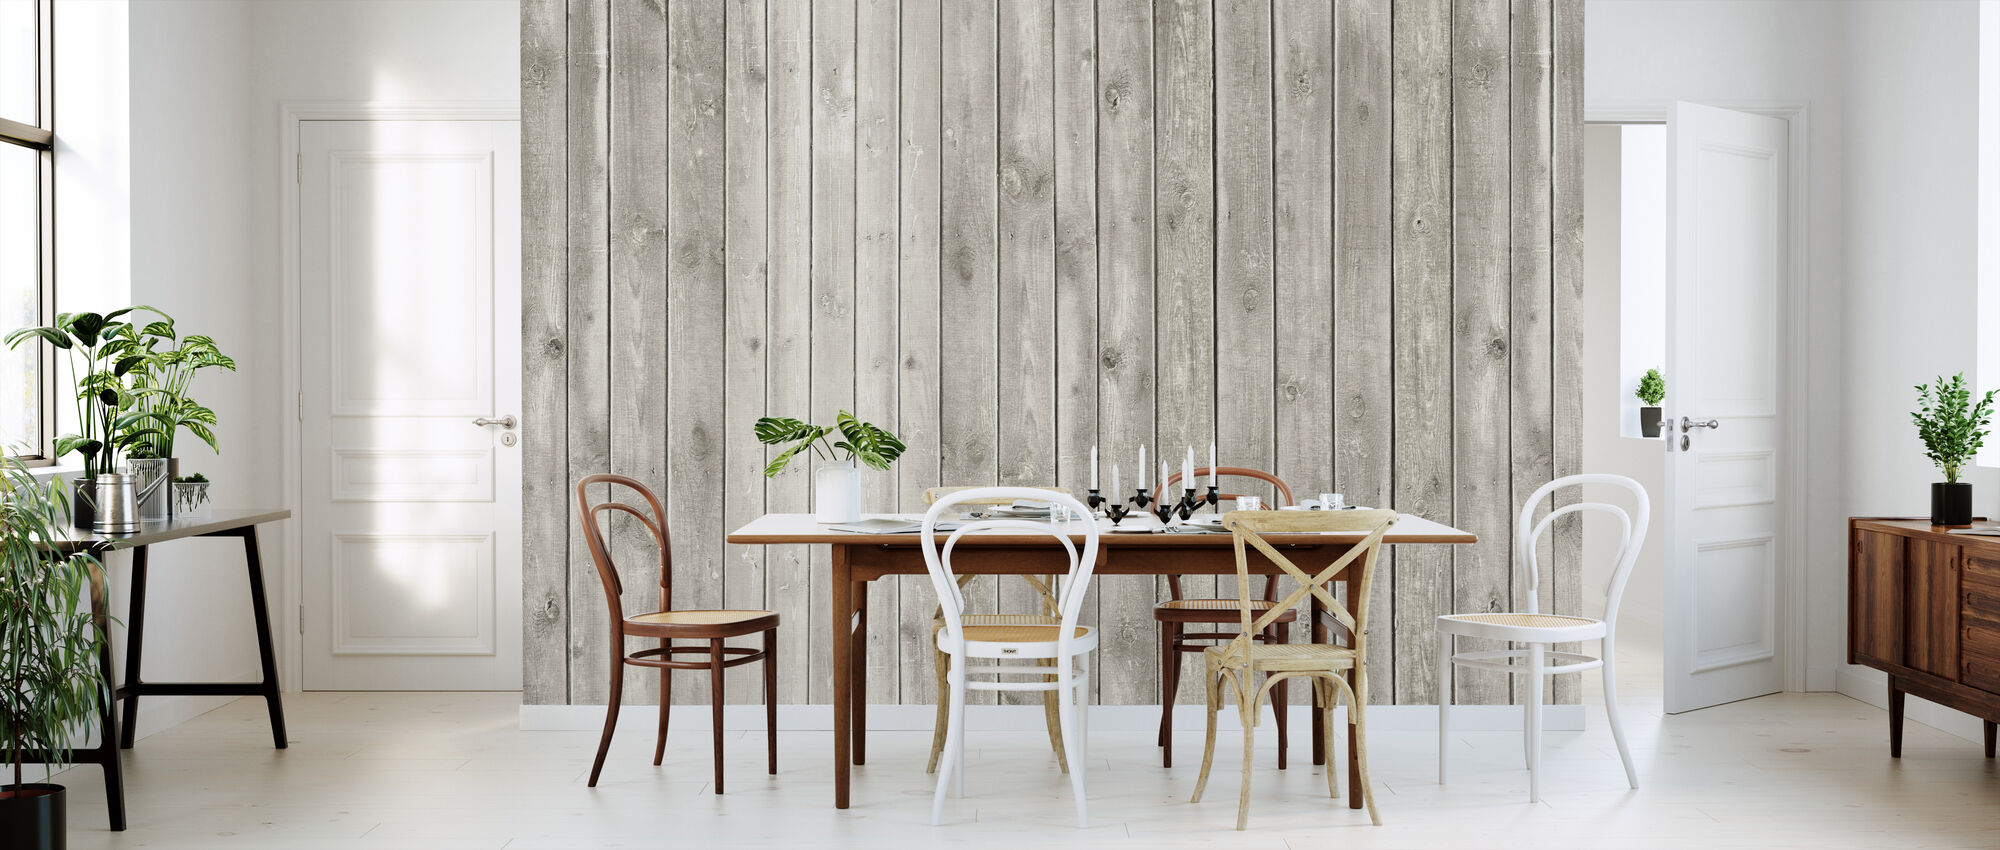 Faded Natural Wood - Wallpaper - Kitchen